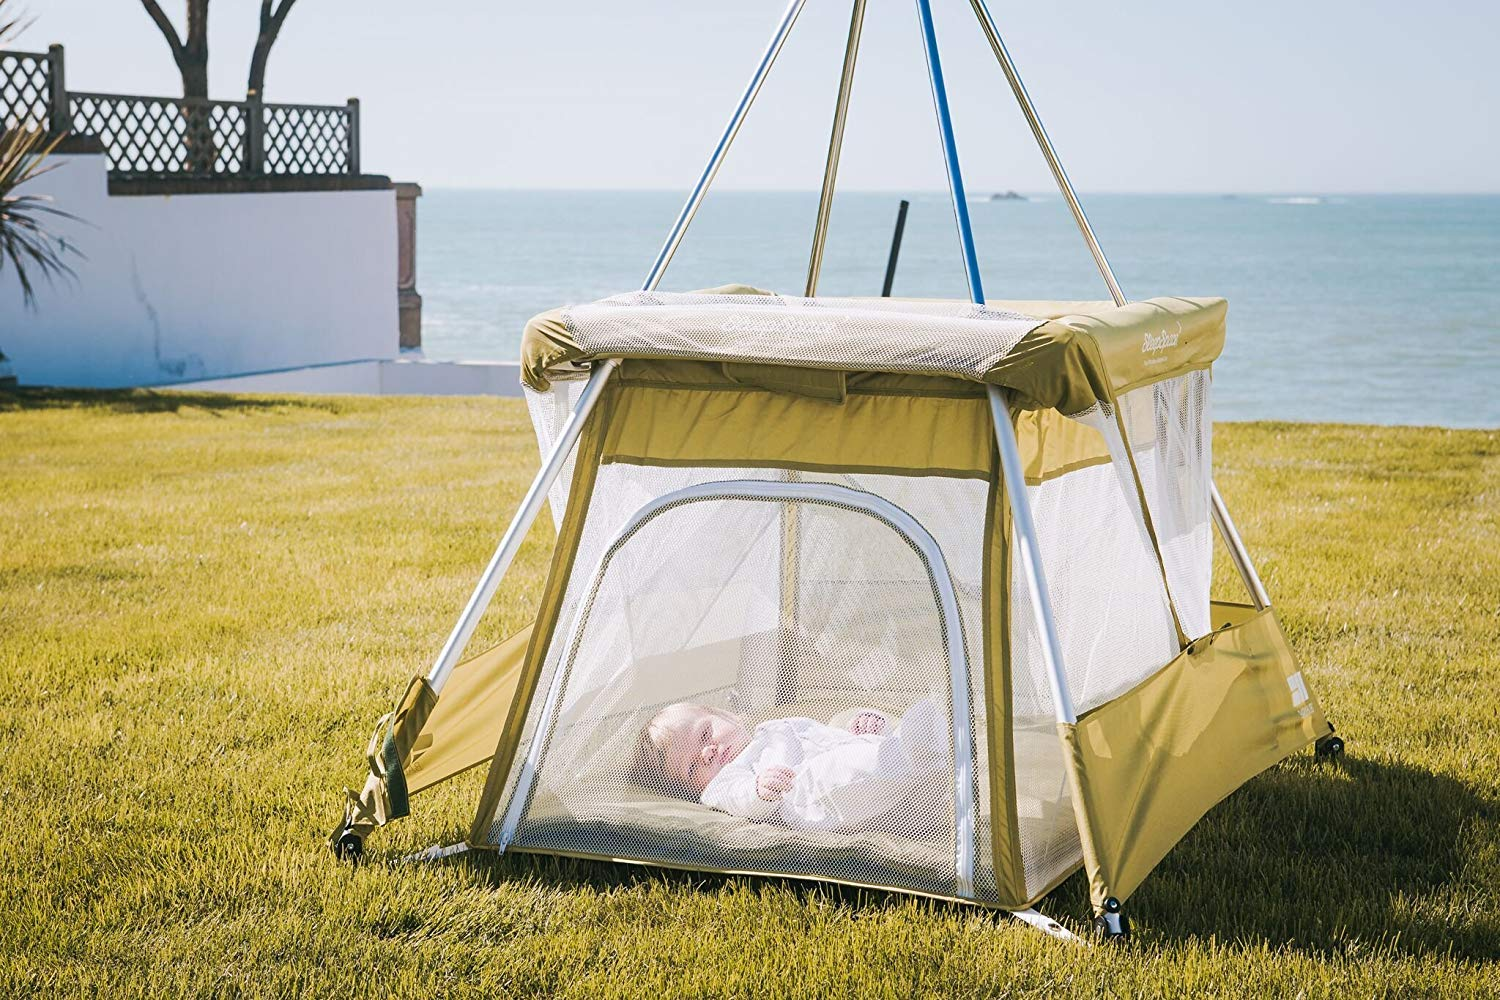 BabyHub Travel Cot with Circus Tepee and Mosquito Net, Green BabyHub A travel cot, mosquito proof space and reuse as a play tepee Lightweight and easy to put up and fold in seconds Includes extra padded seam-free mat for comfort 7